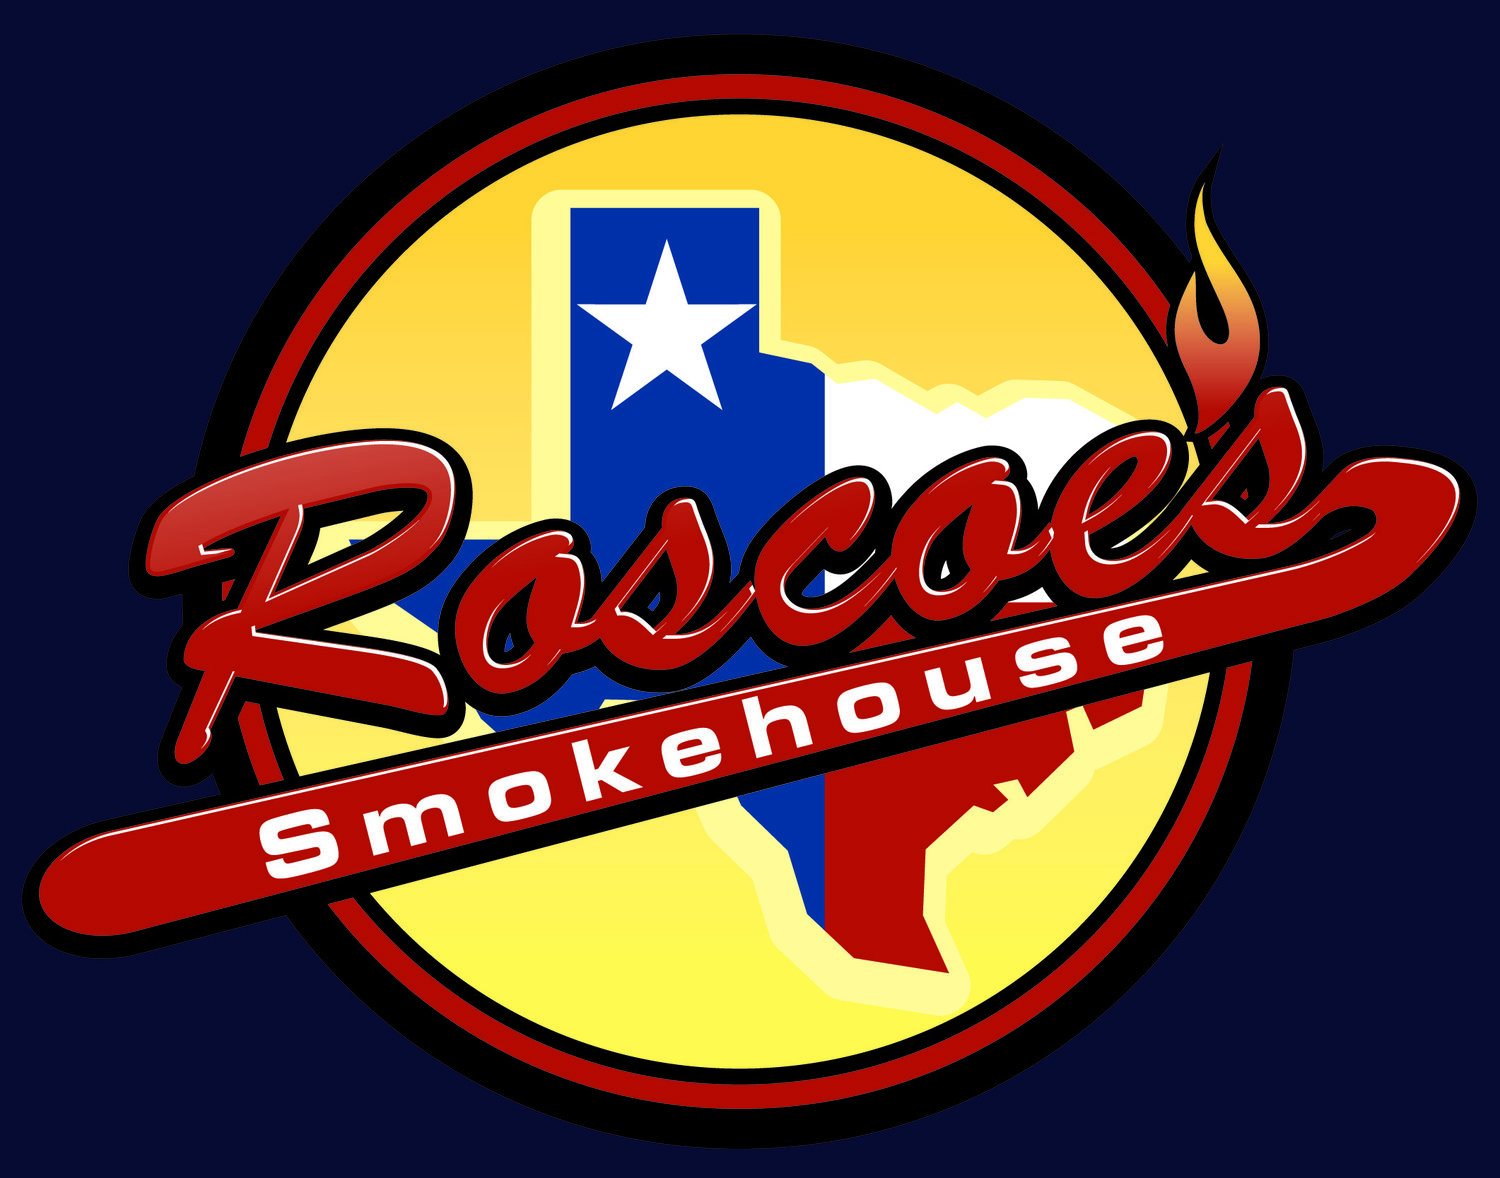 Roscoe's Smokehouse